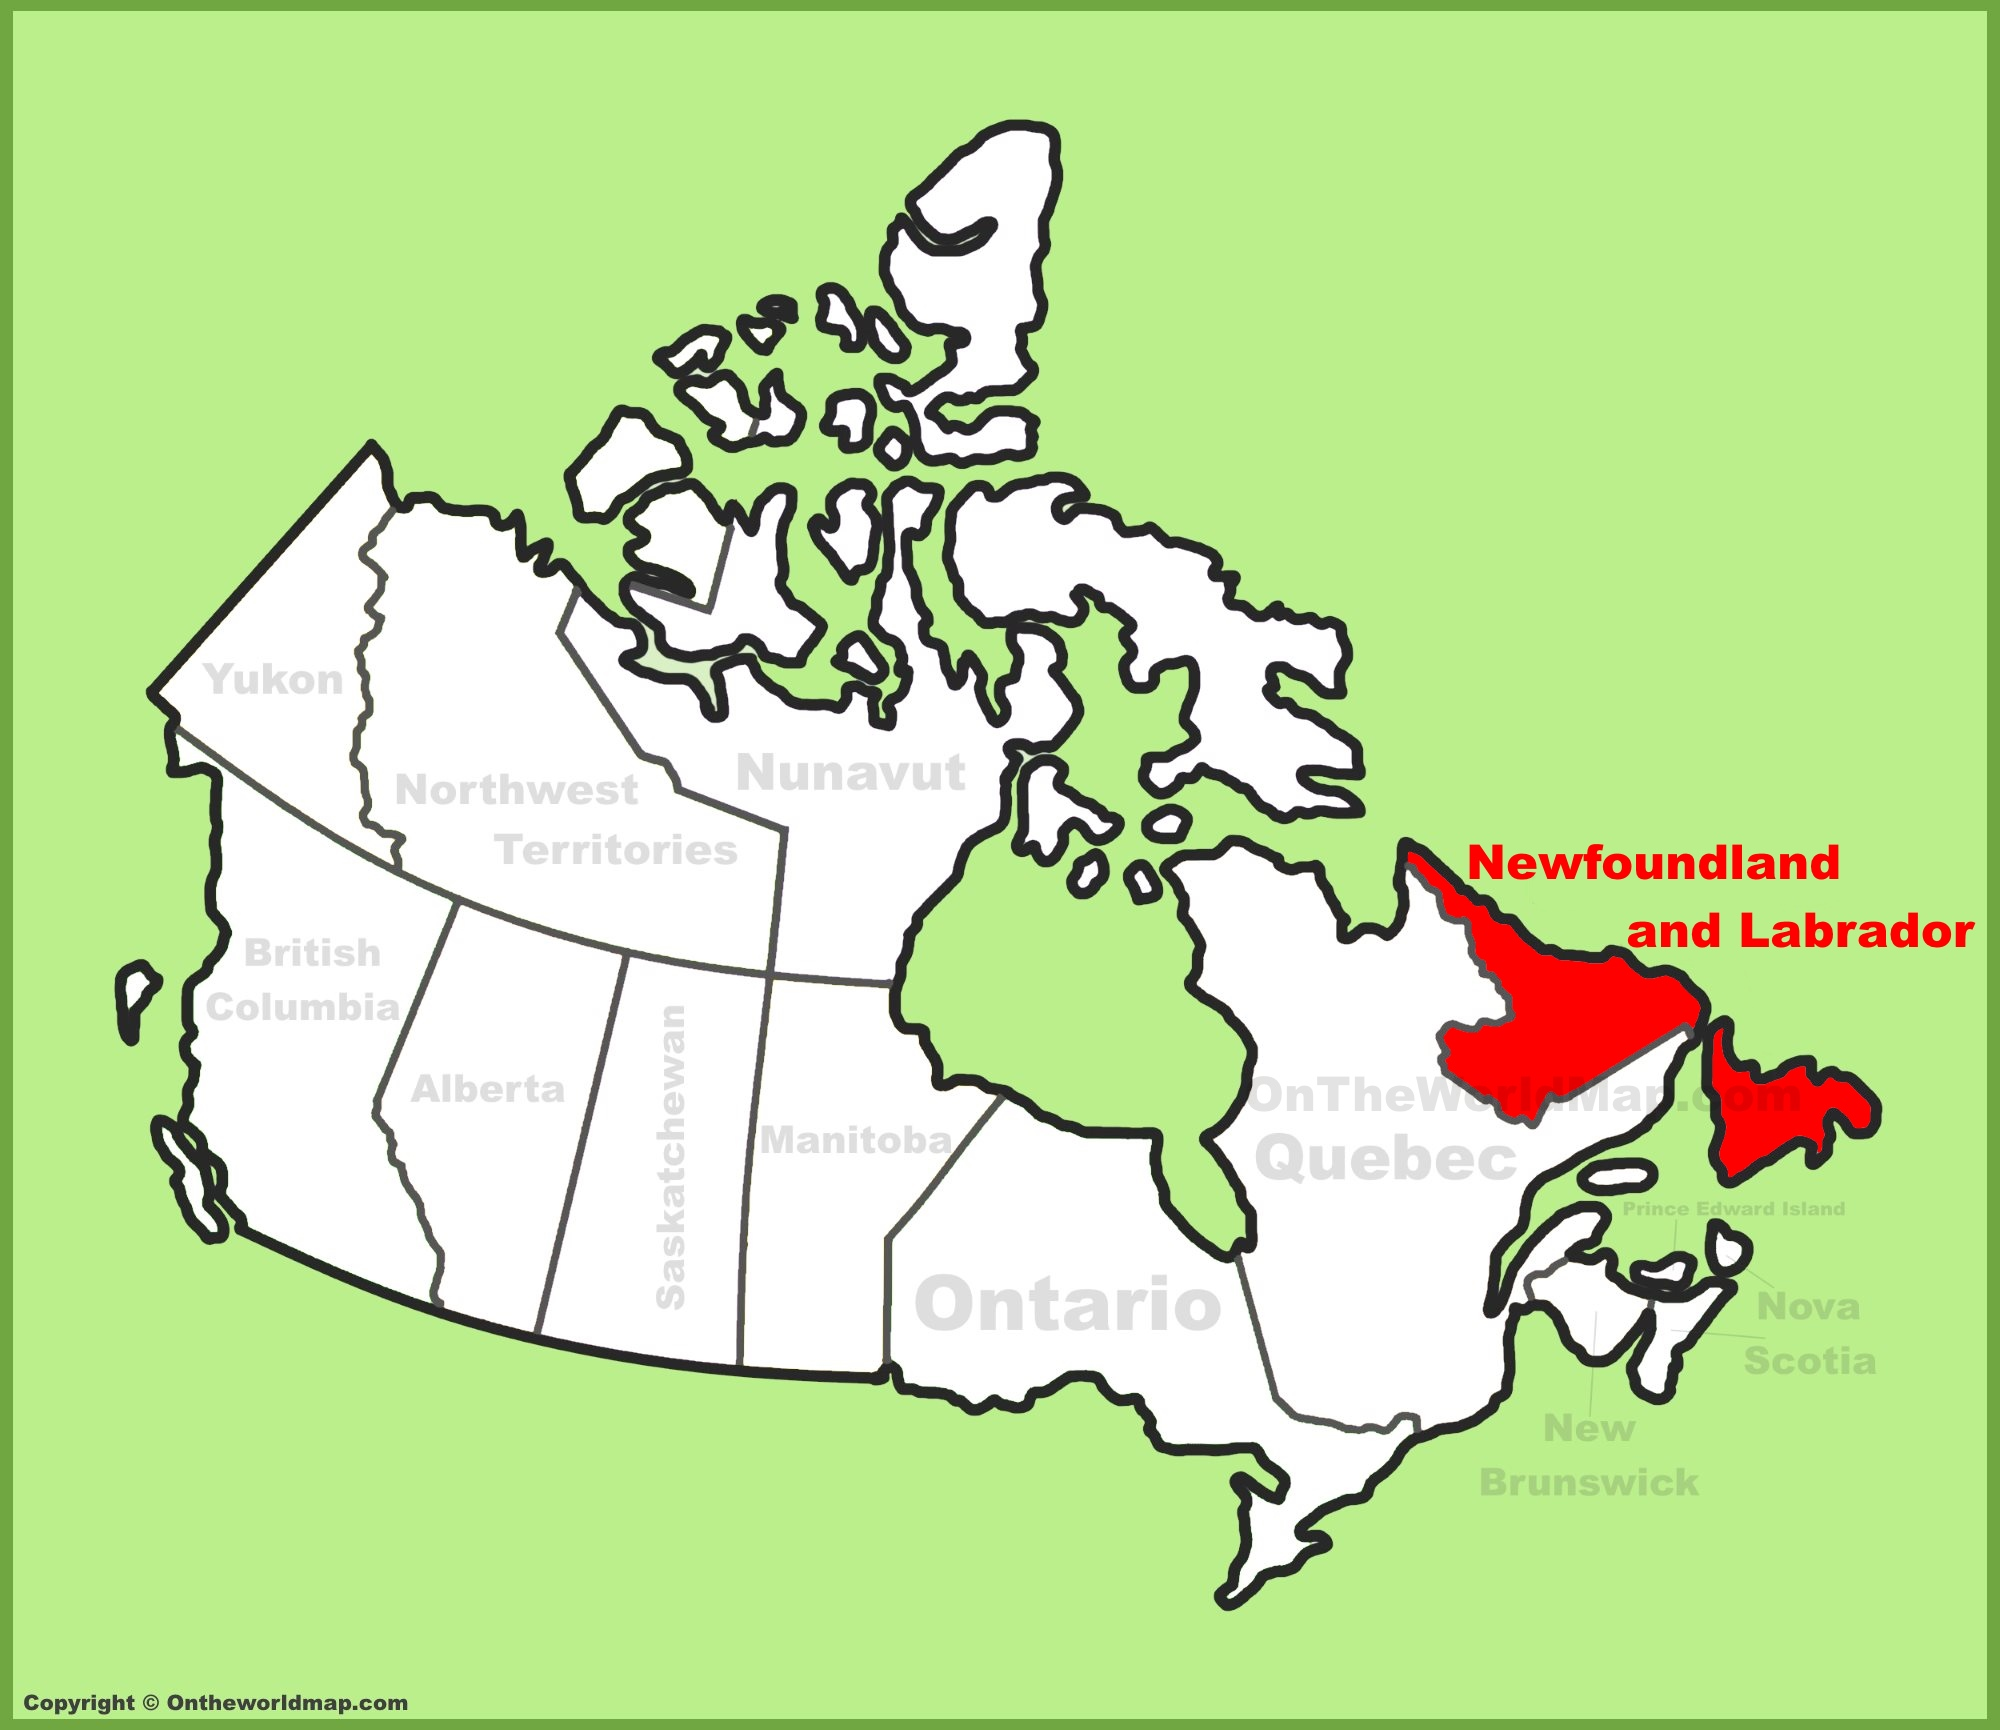 Newfoundland Map Of Canada Newfoundland and Labrador Province location on the Canada Map